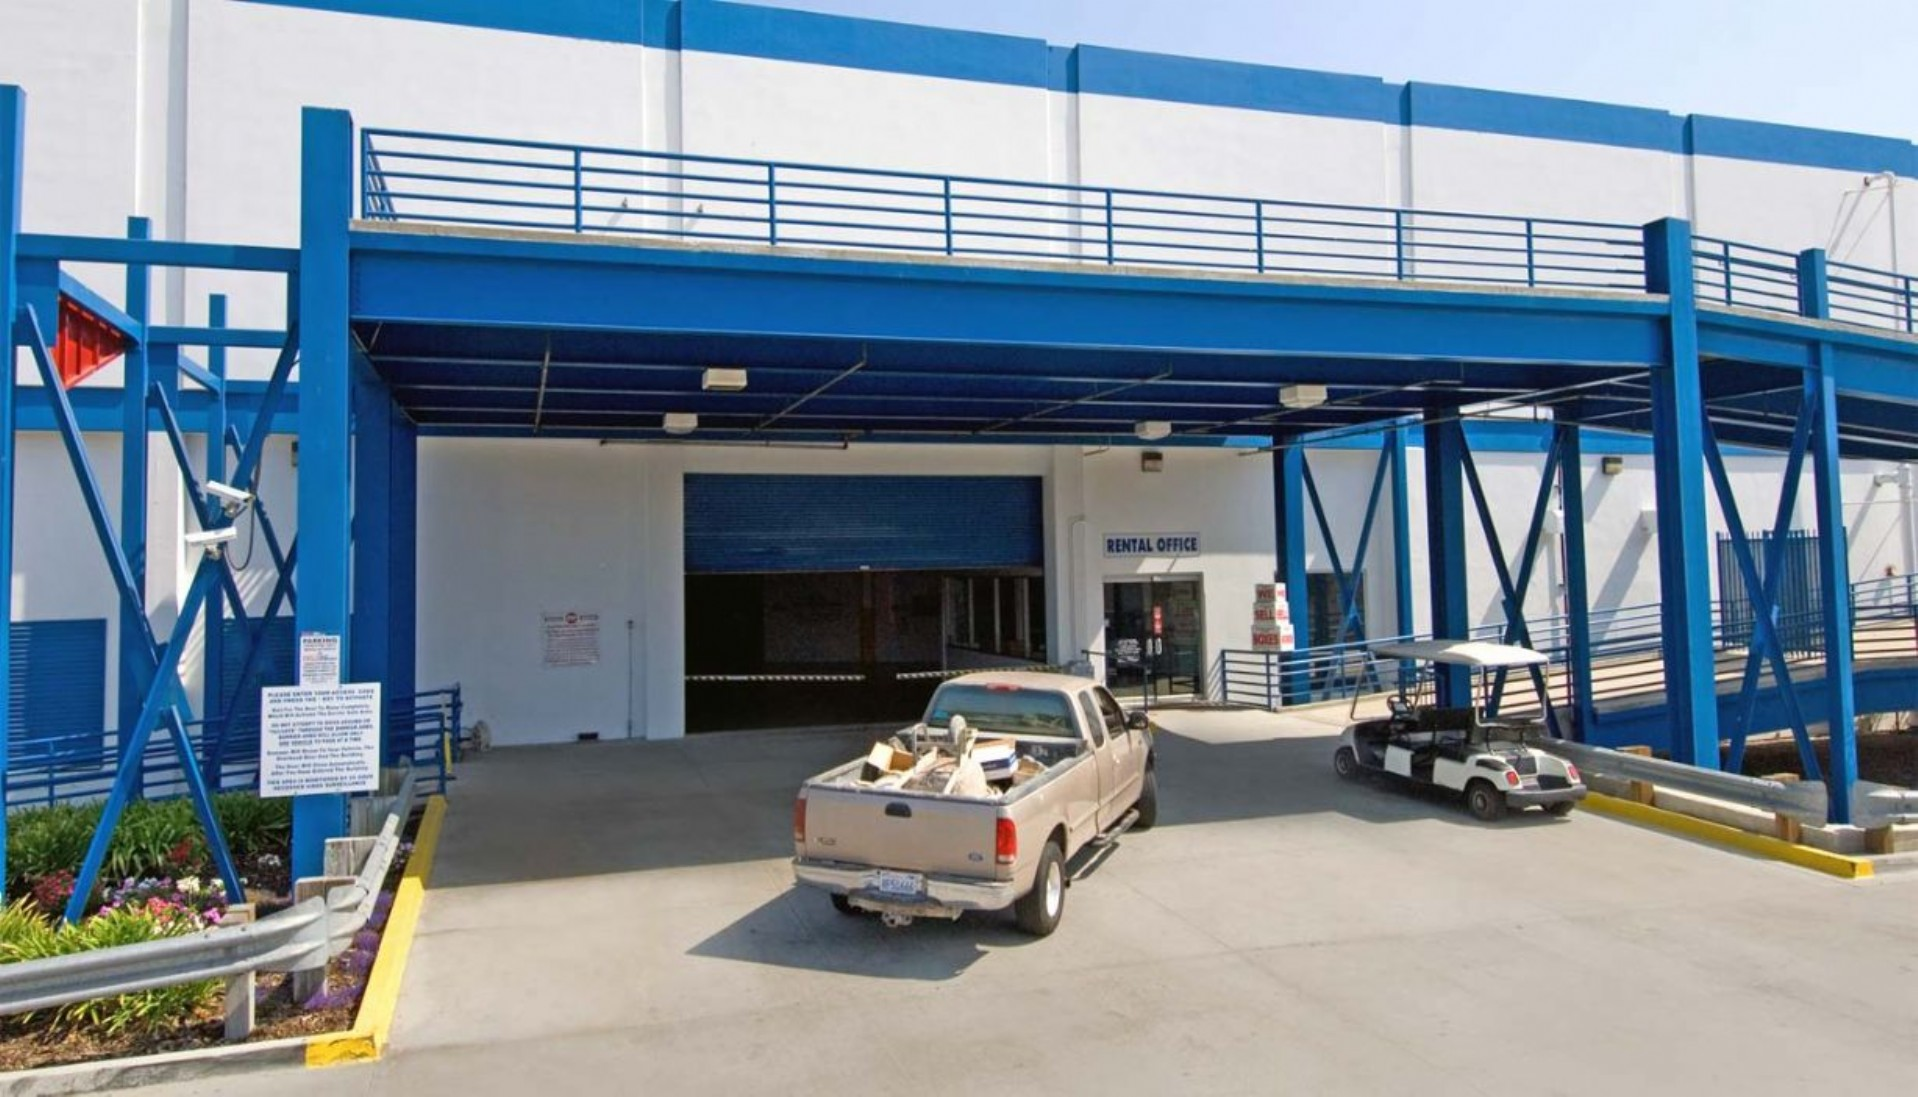 Price Self Storage West Los Angeles La Brea Avenue 400,000 sq.ft. drive in storage facility - drive your vehicle inside right up to your storage unit